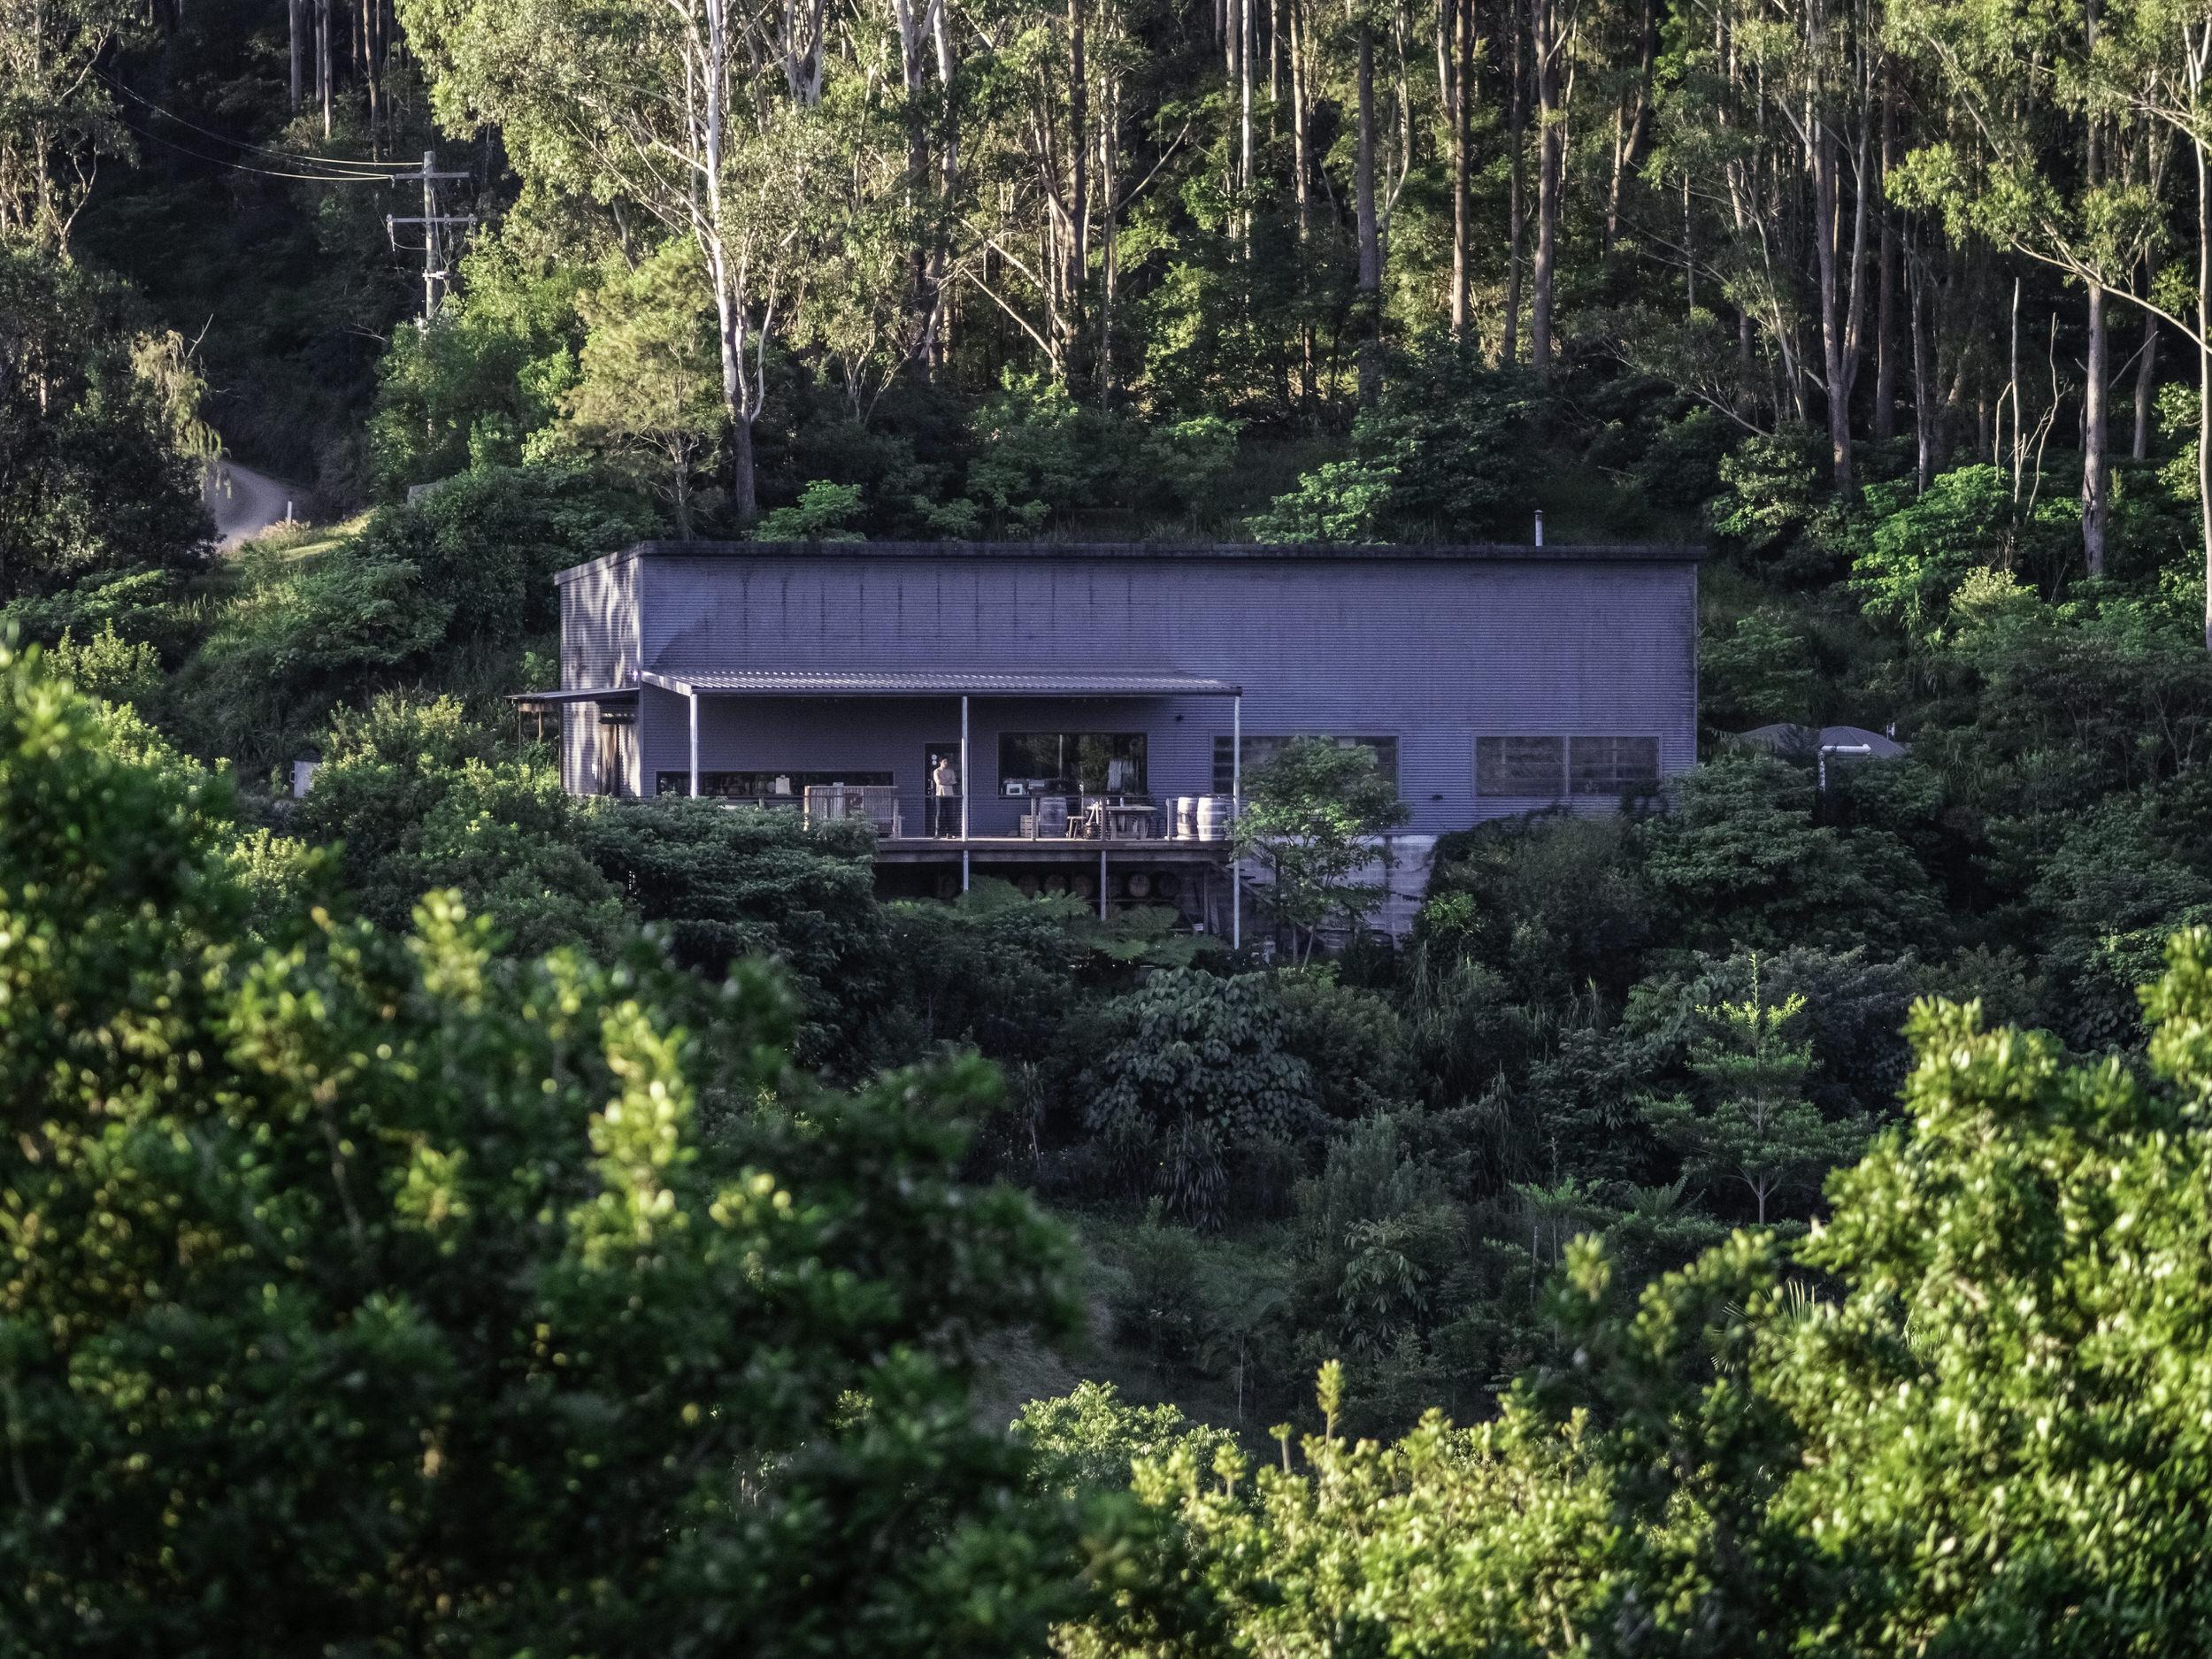 Cape Byron Distillery Rainforest Tour and Tasting